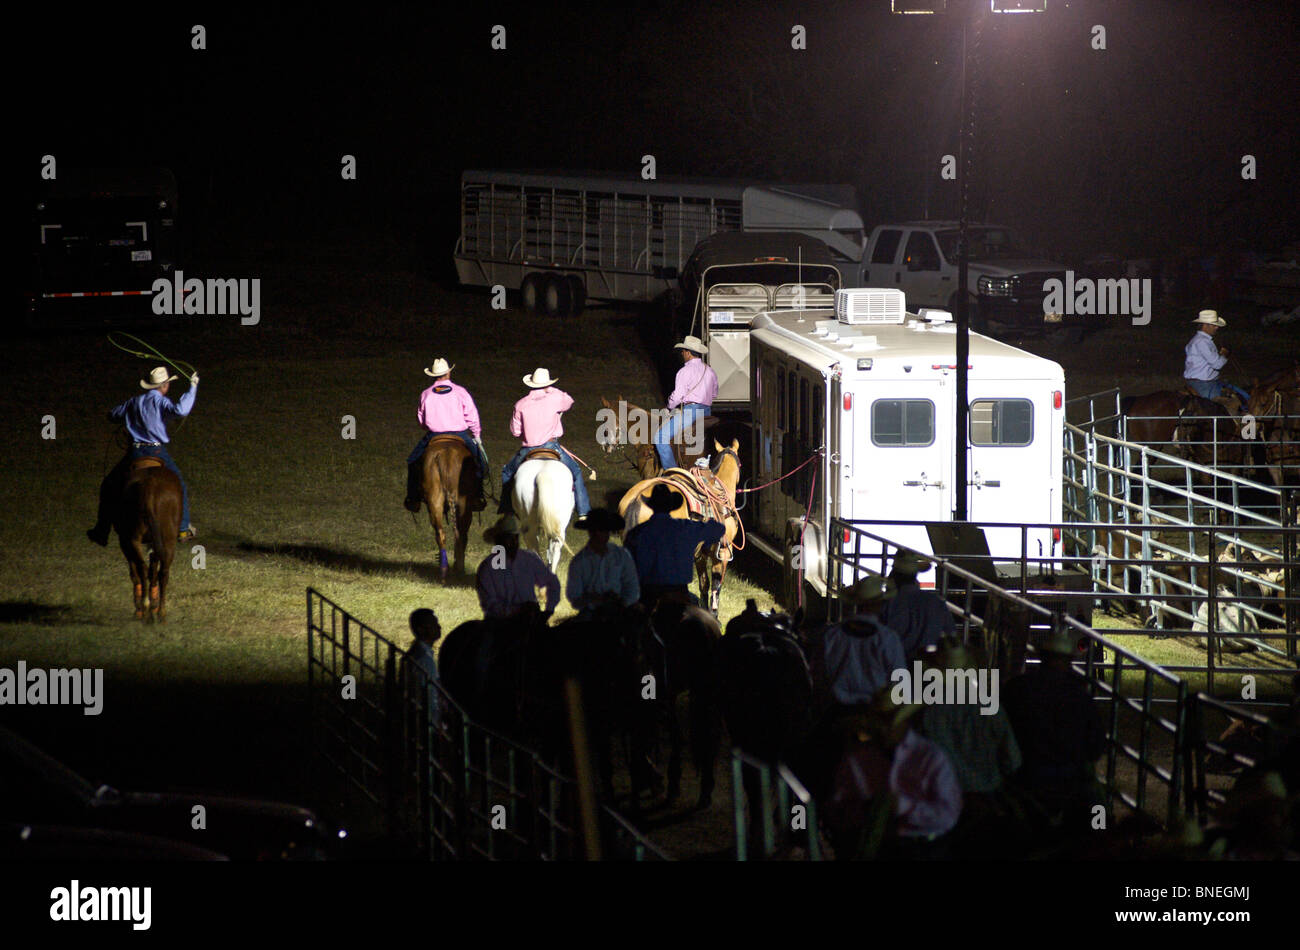 Cowboy members of PRCA riding horses backstage in Bridgeport  Texas, USA Stock Photo